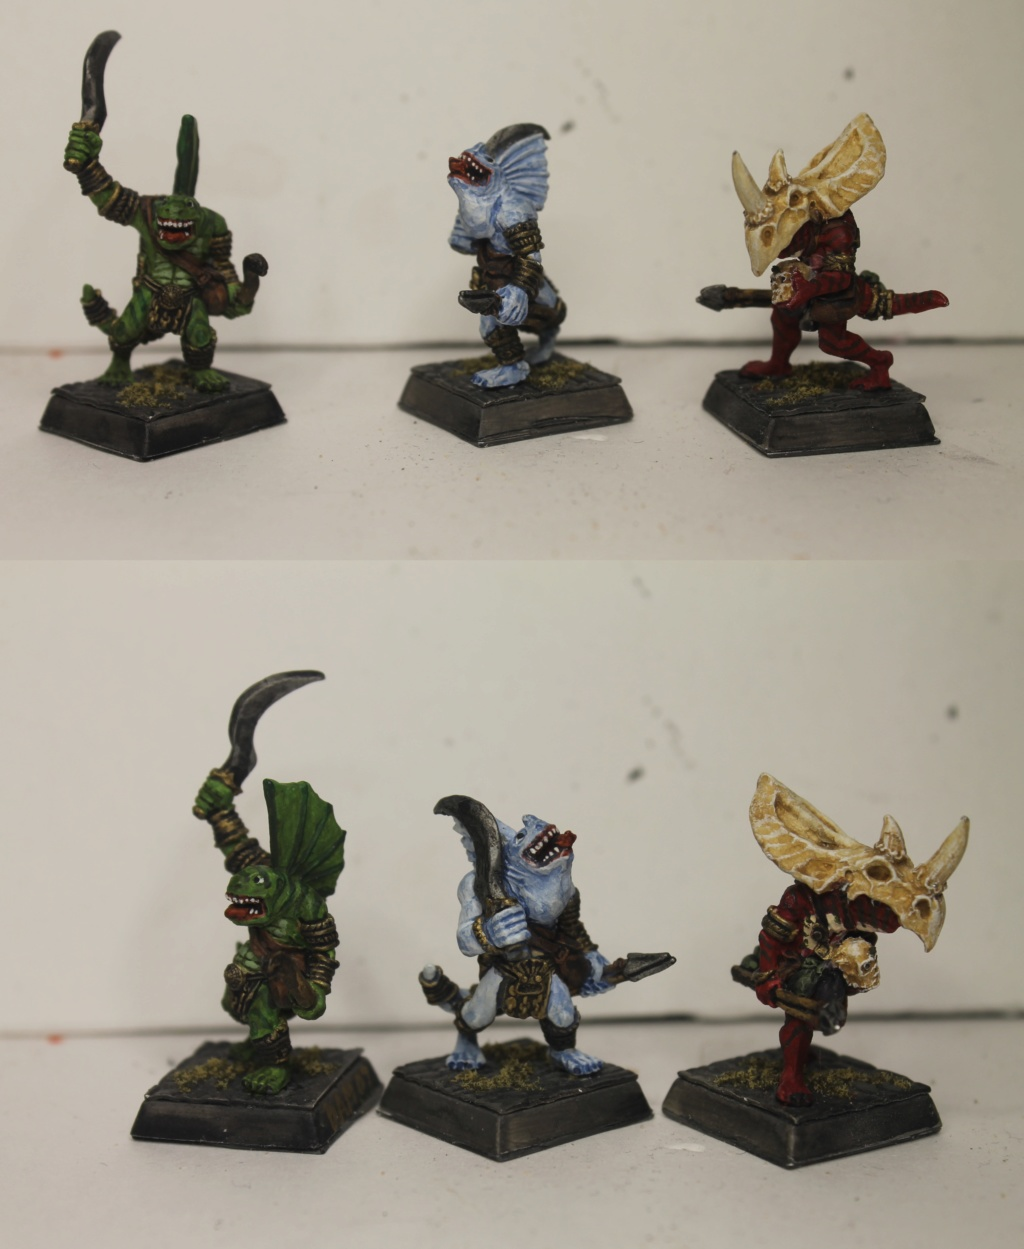 Doc's Lizardmen Warband Lizard11